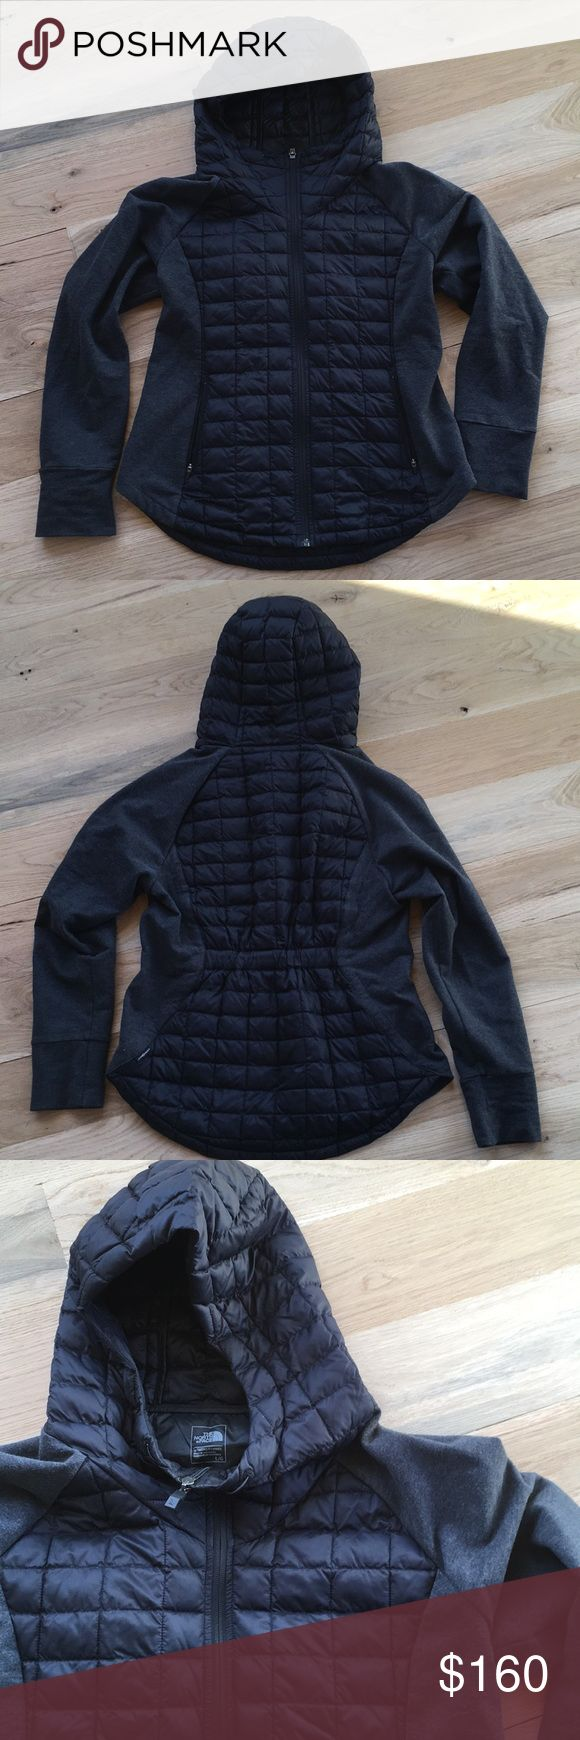 North Face Thermoball Jacket North Face Thermoball jacket. Black quilted body and hood with grey sweatshirt material sleeves. Jacket is very warm and great for layering over other winter items. Size large. The North Face Jackets & Coats